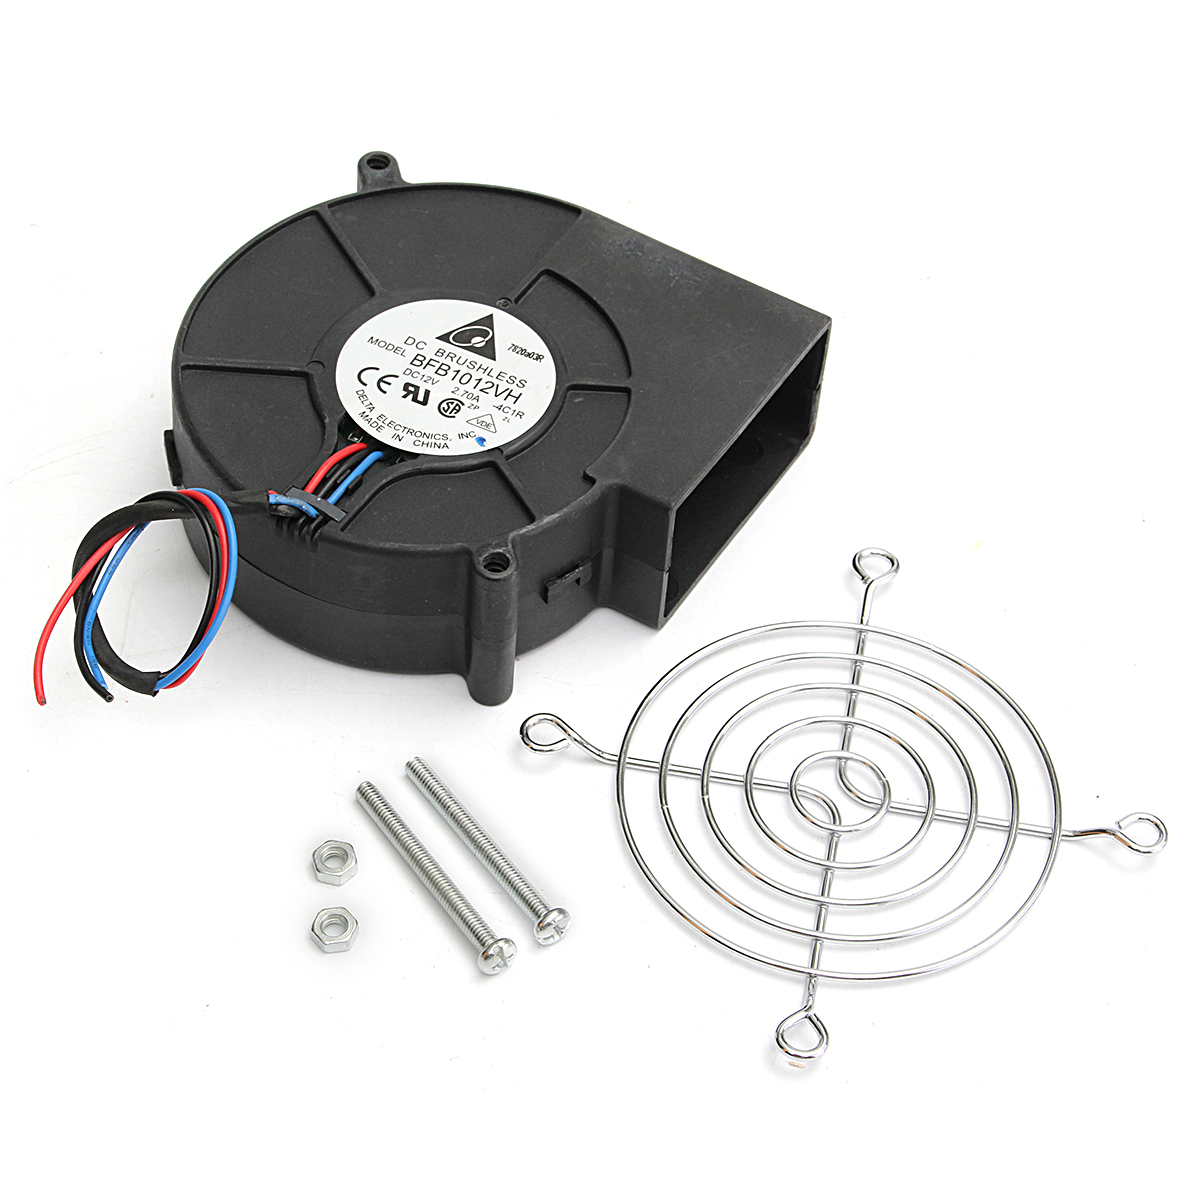 DC 12V Air Blower BBQ Cooking Cooling Fan Blower Fan For Barbecue Stove